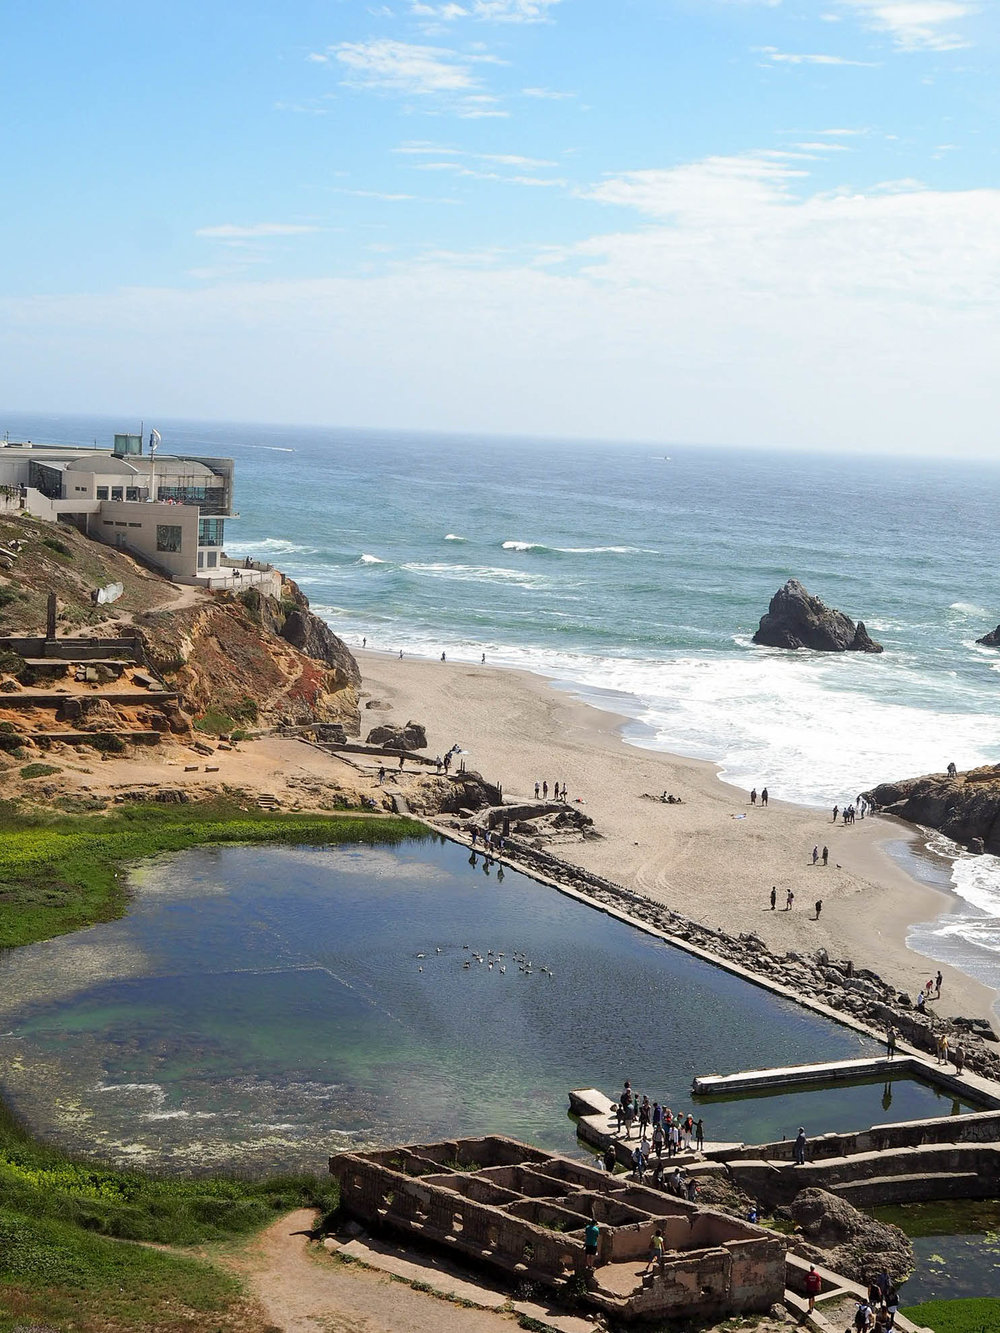 Overlooking the remains of Sutro Baths in San Francisco